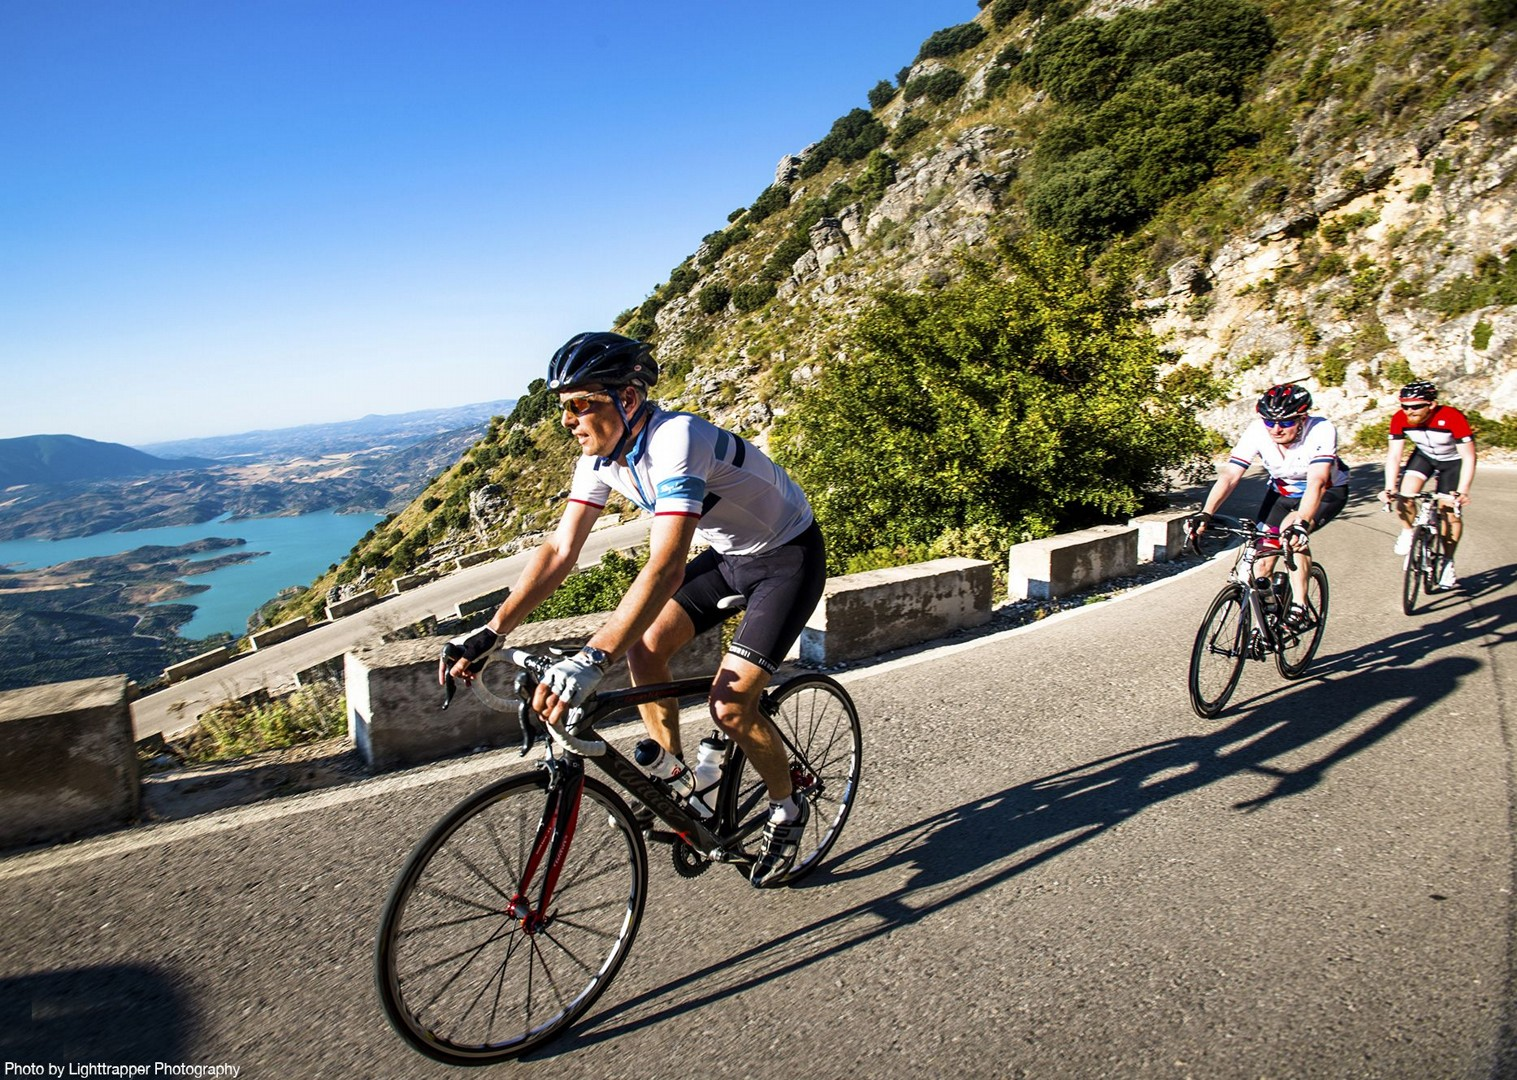 enjoyable-challenging-road-cycling-holiday-spain-guided.jpg - Southern Spain - Andalucia - Los Pueblos Blancos - Guided Road Cycling Holiday - Road Cycling